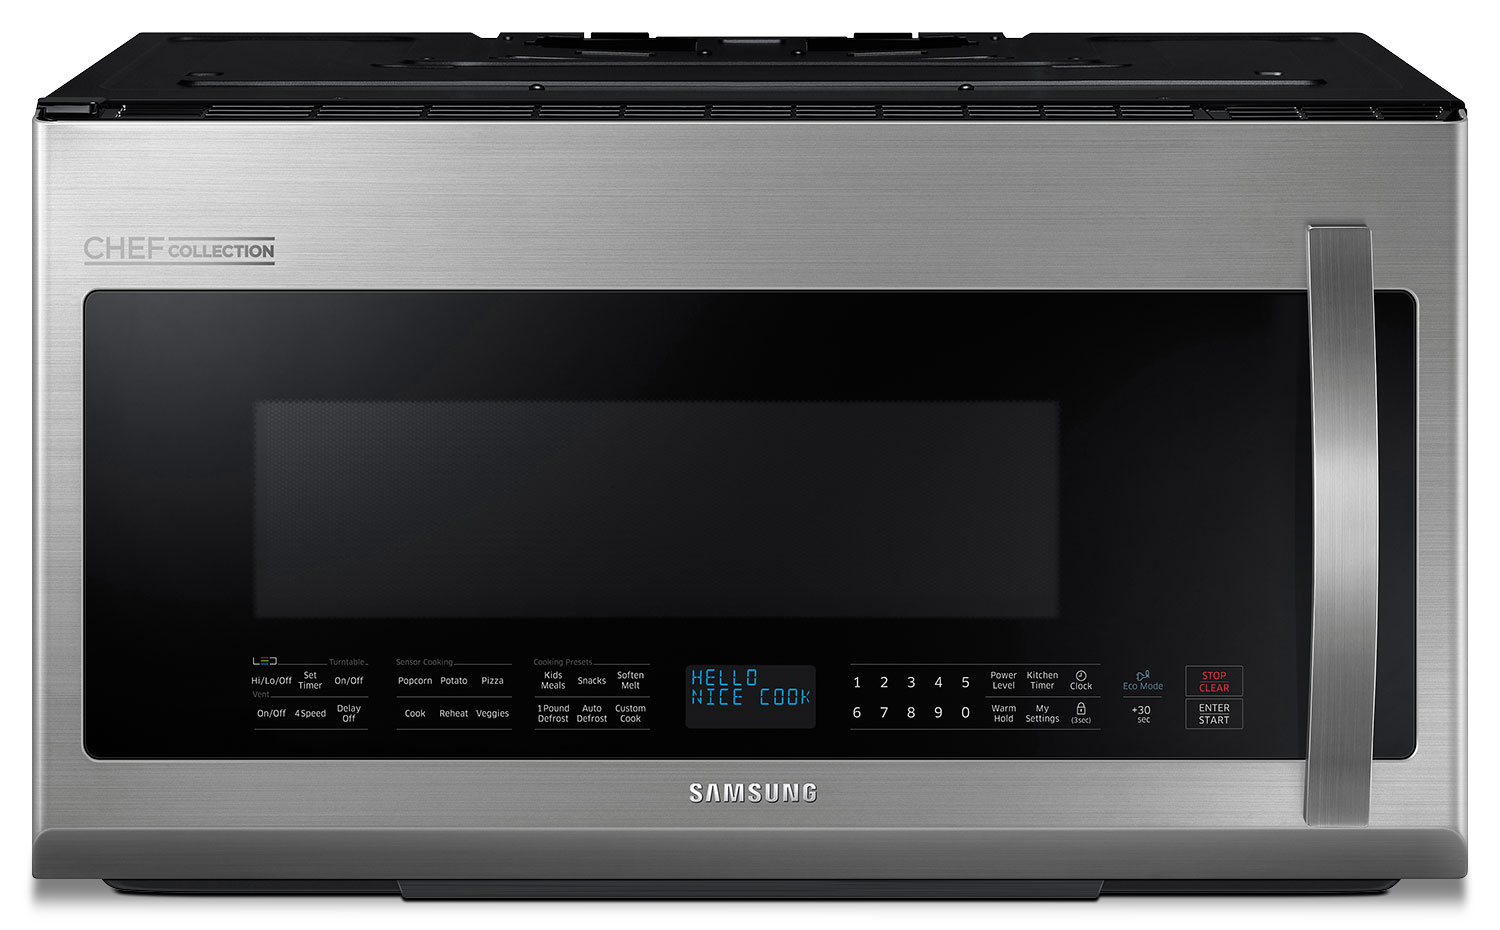 Samsung Stainless Steel Over-the-Range Microwave - ME21H9900AS